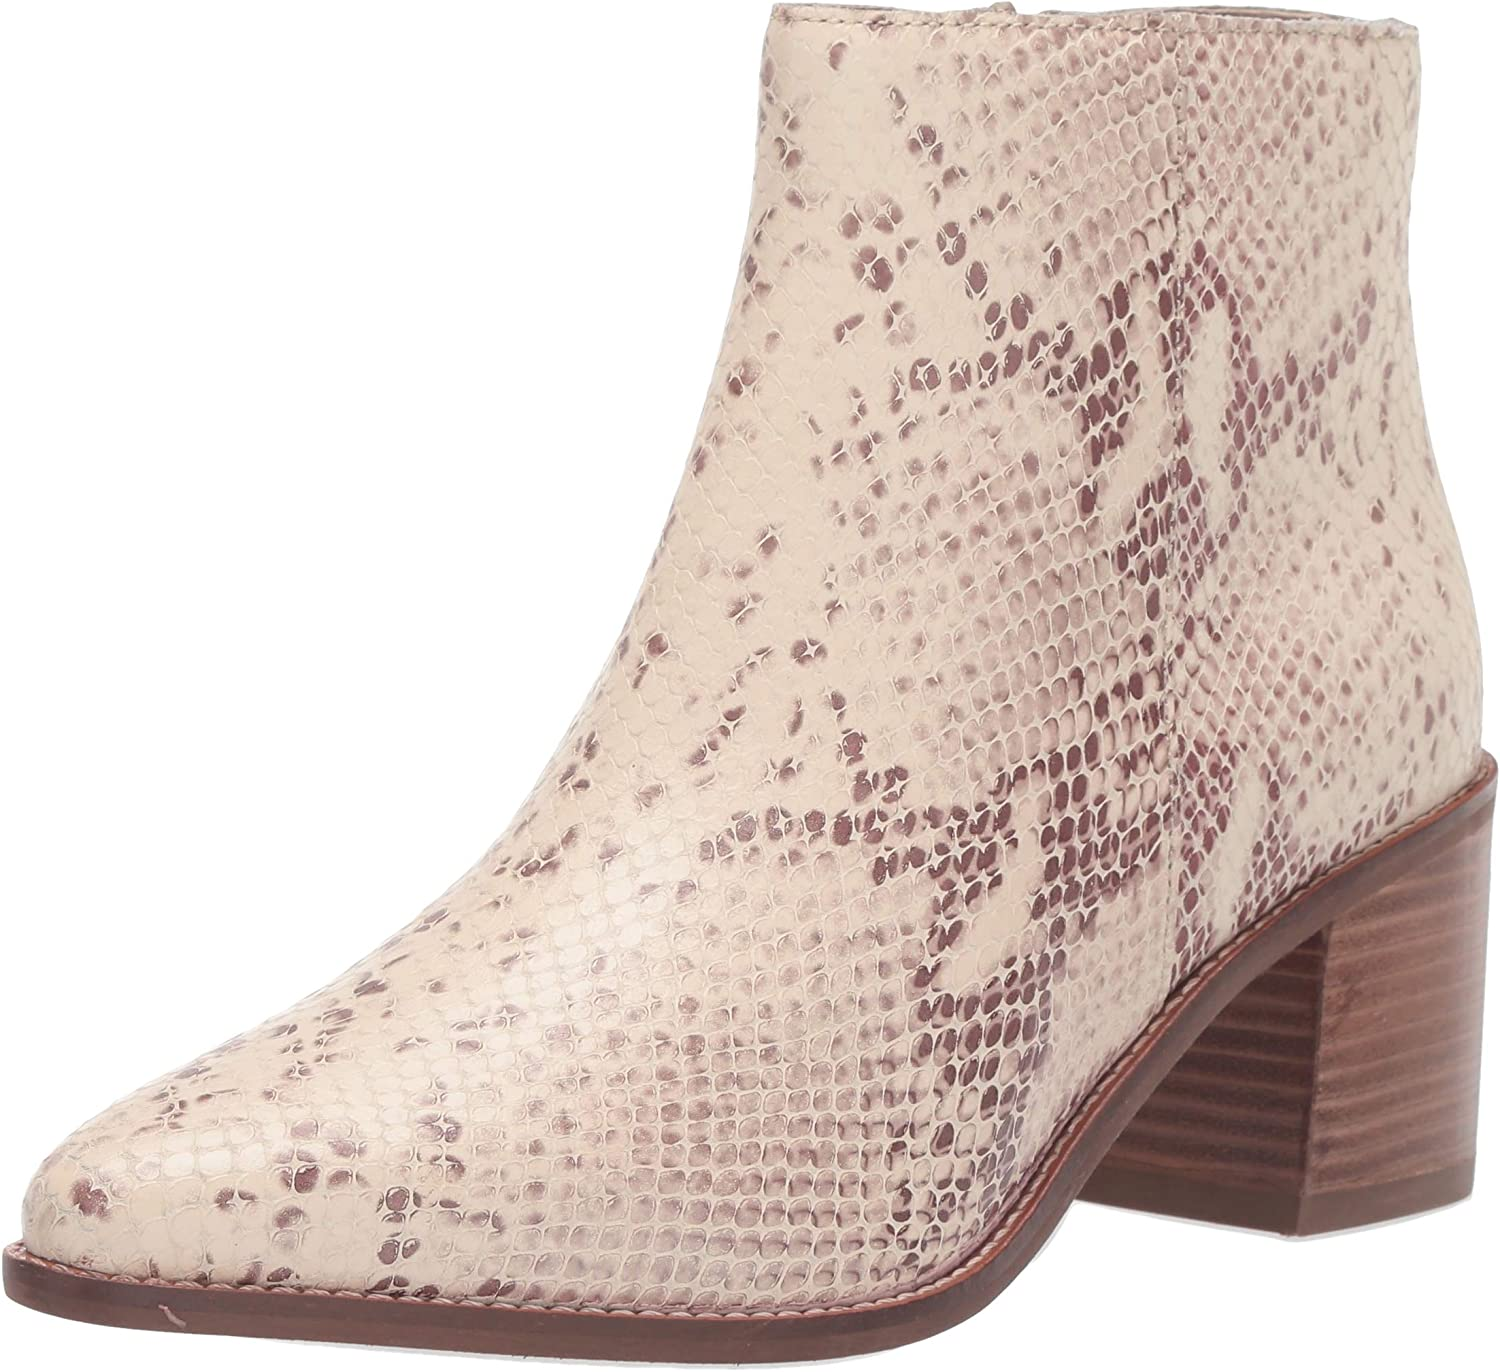 Seychelles Women's for 品質検査済 直送商品 The Boot Ankle Occasion